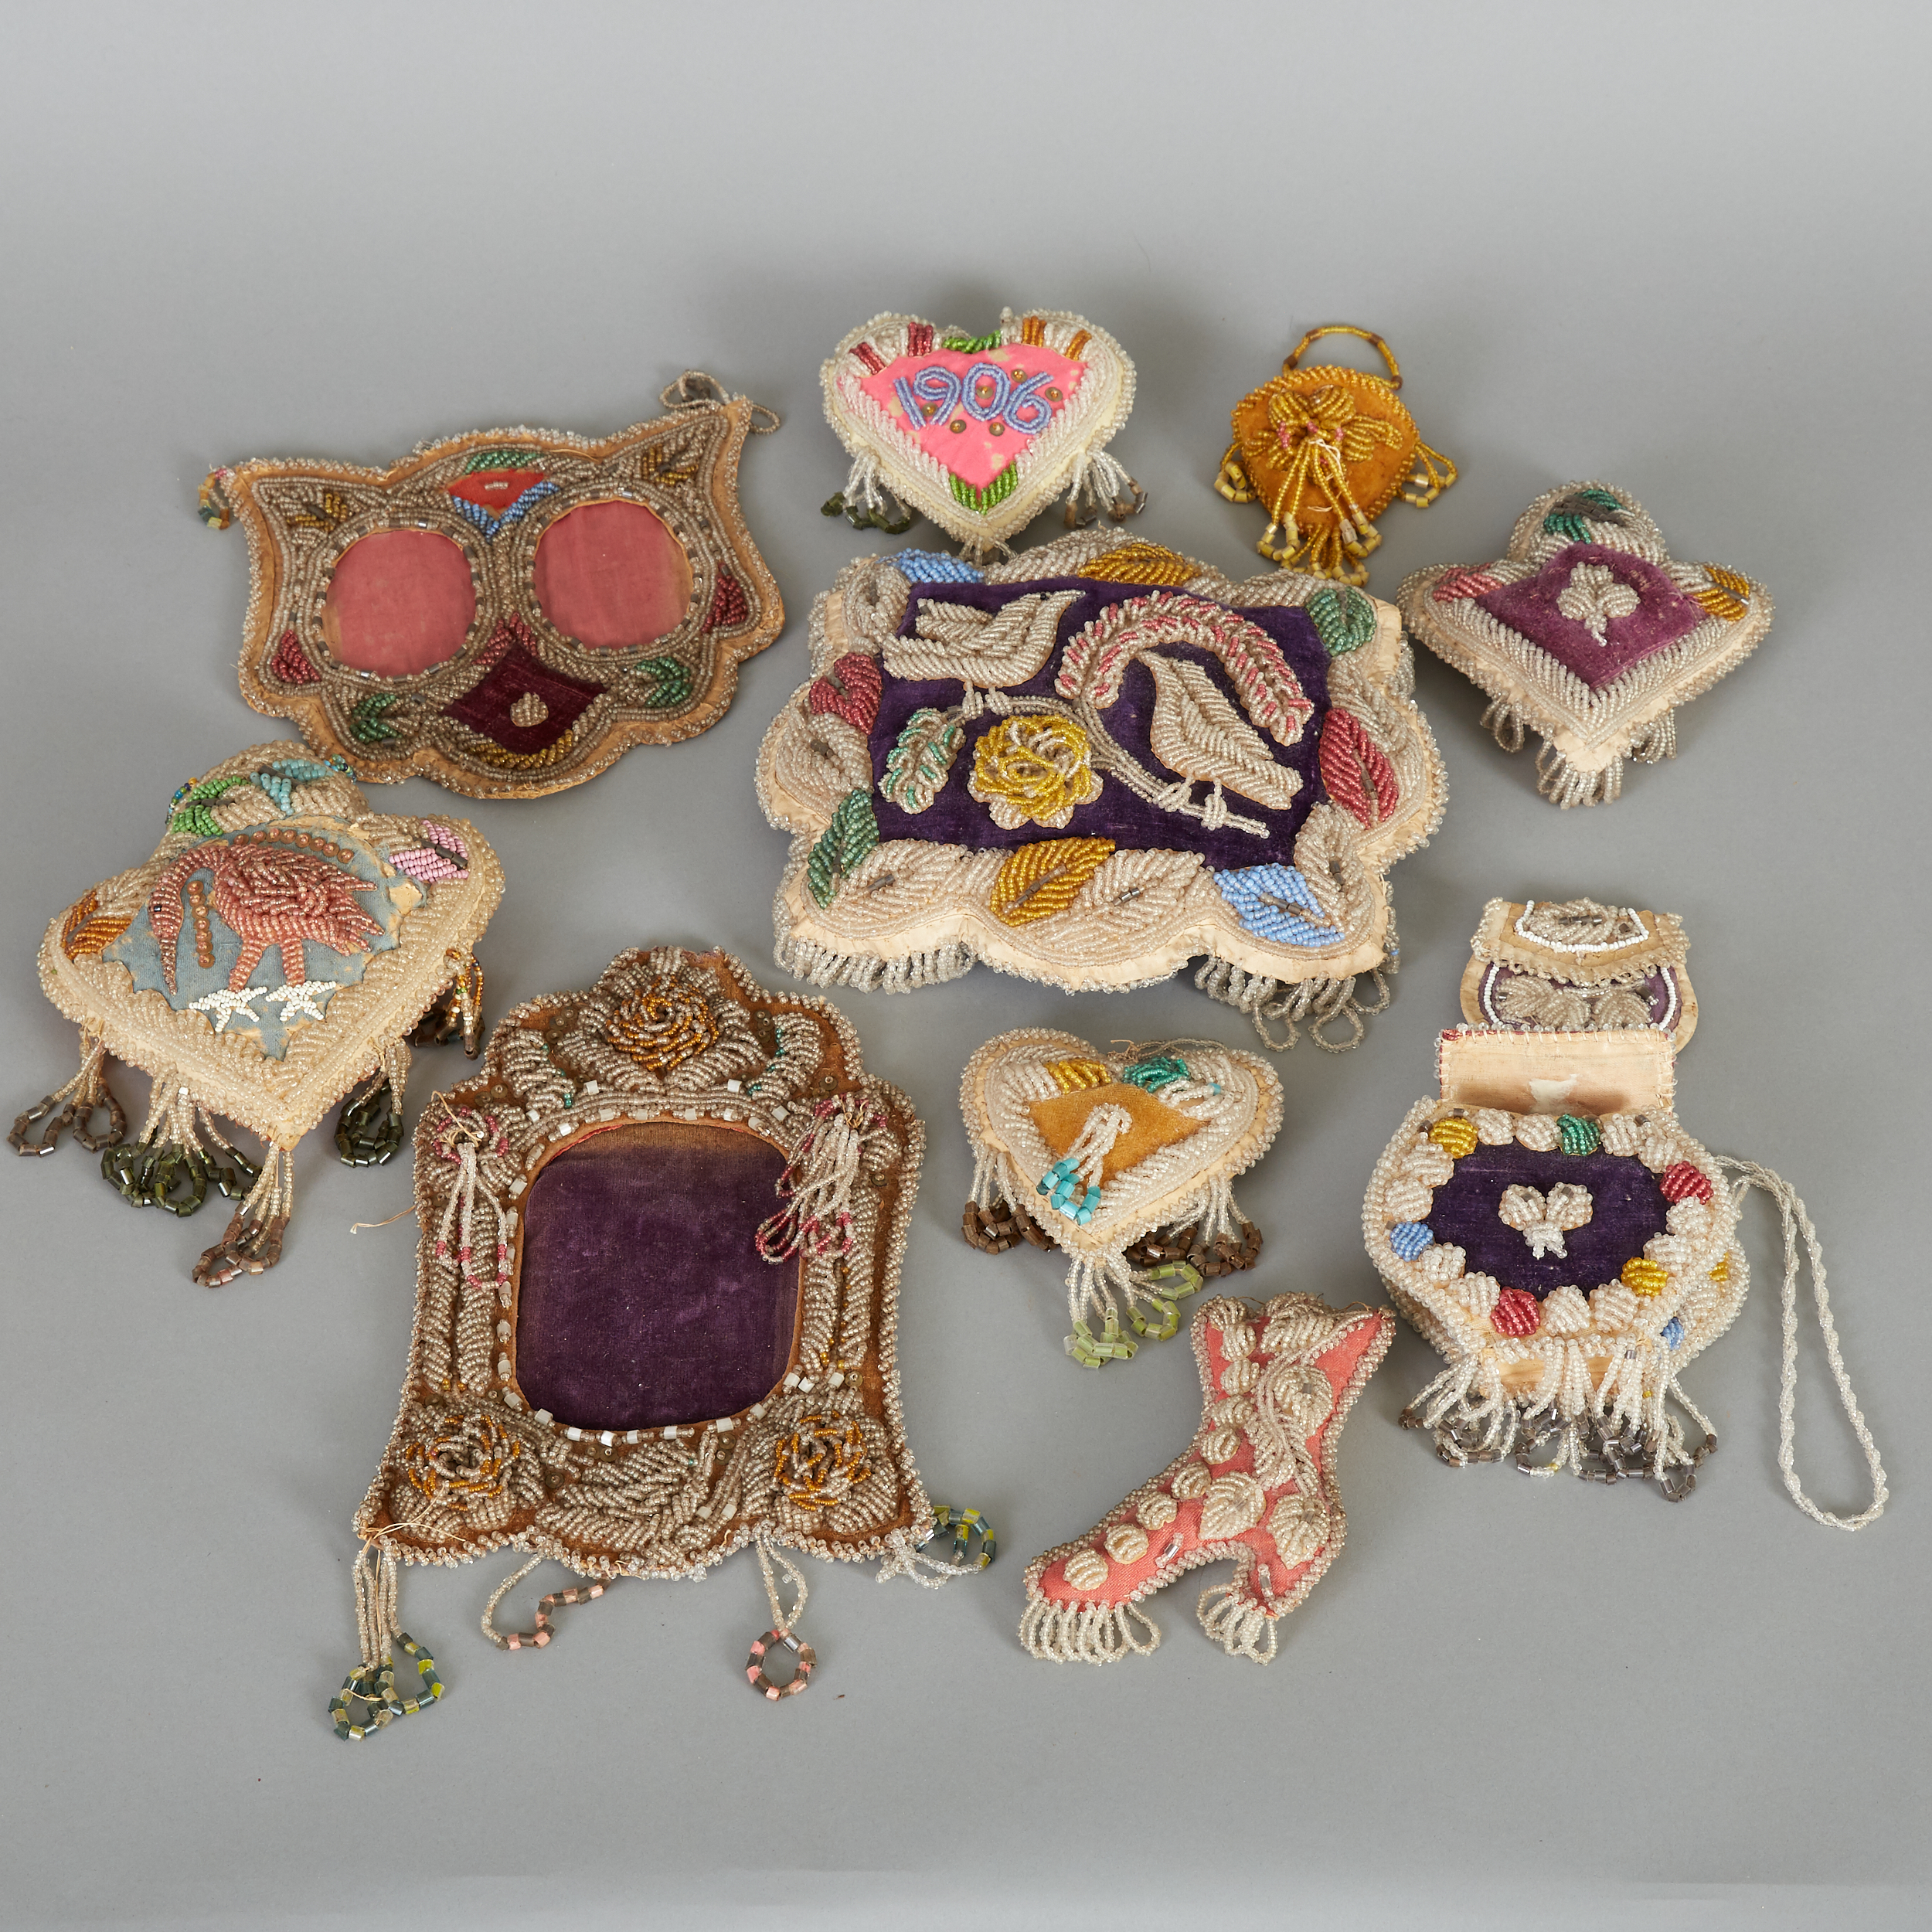 Los 221 - Eleven Iroquois beadwork objects. Two picture frames, one pillow with a bird motif, and seven...